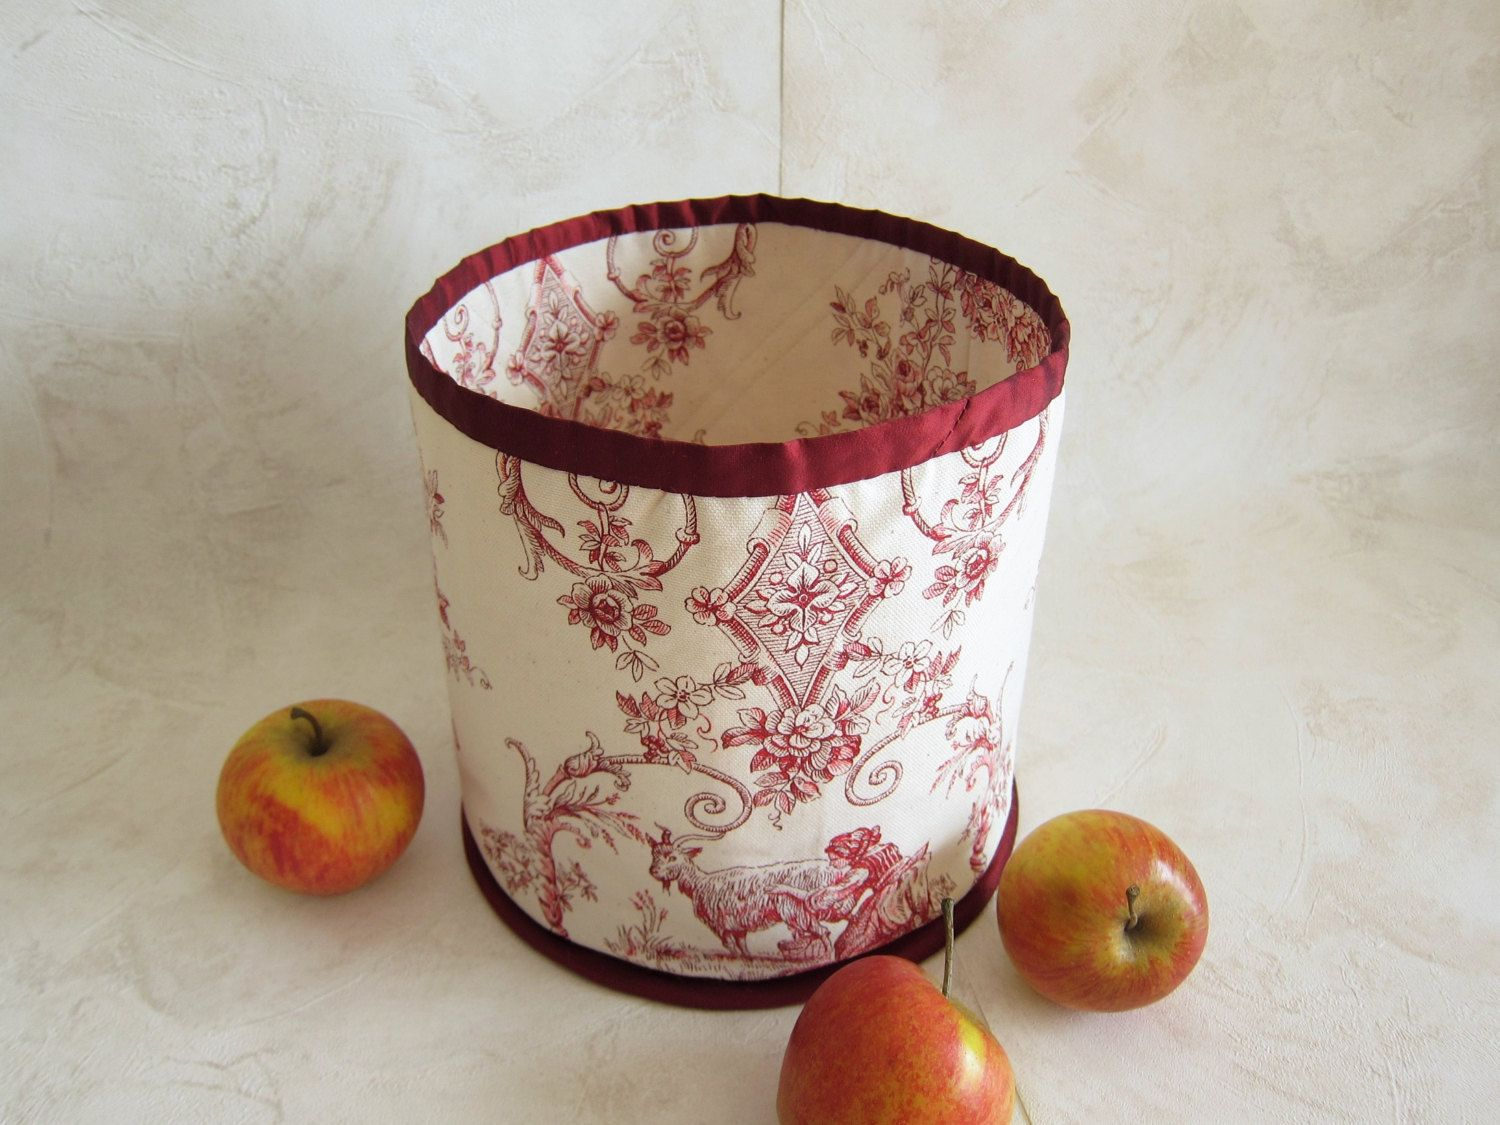 Round fabric toile jouy basket white and red home kitchen decor round fabric toile jouy basket white and red home kitchen decor french cloth vintage cotton empty negle Images